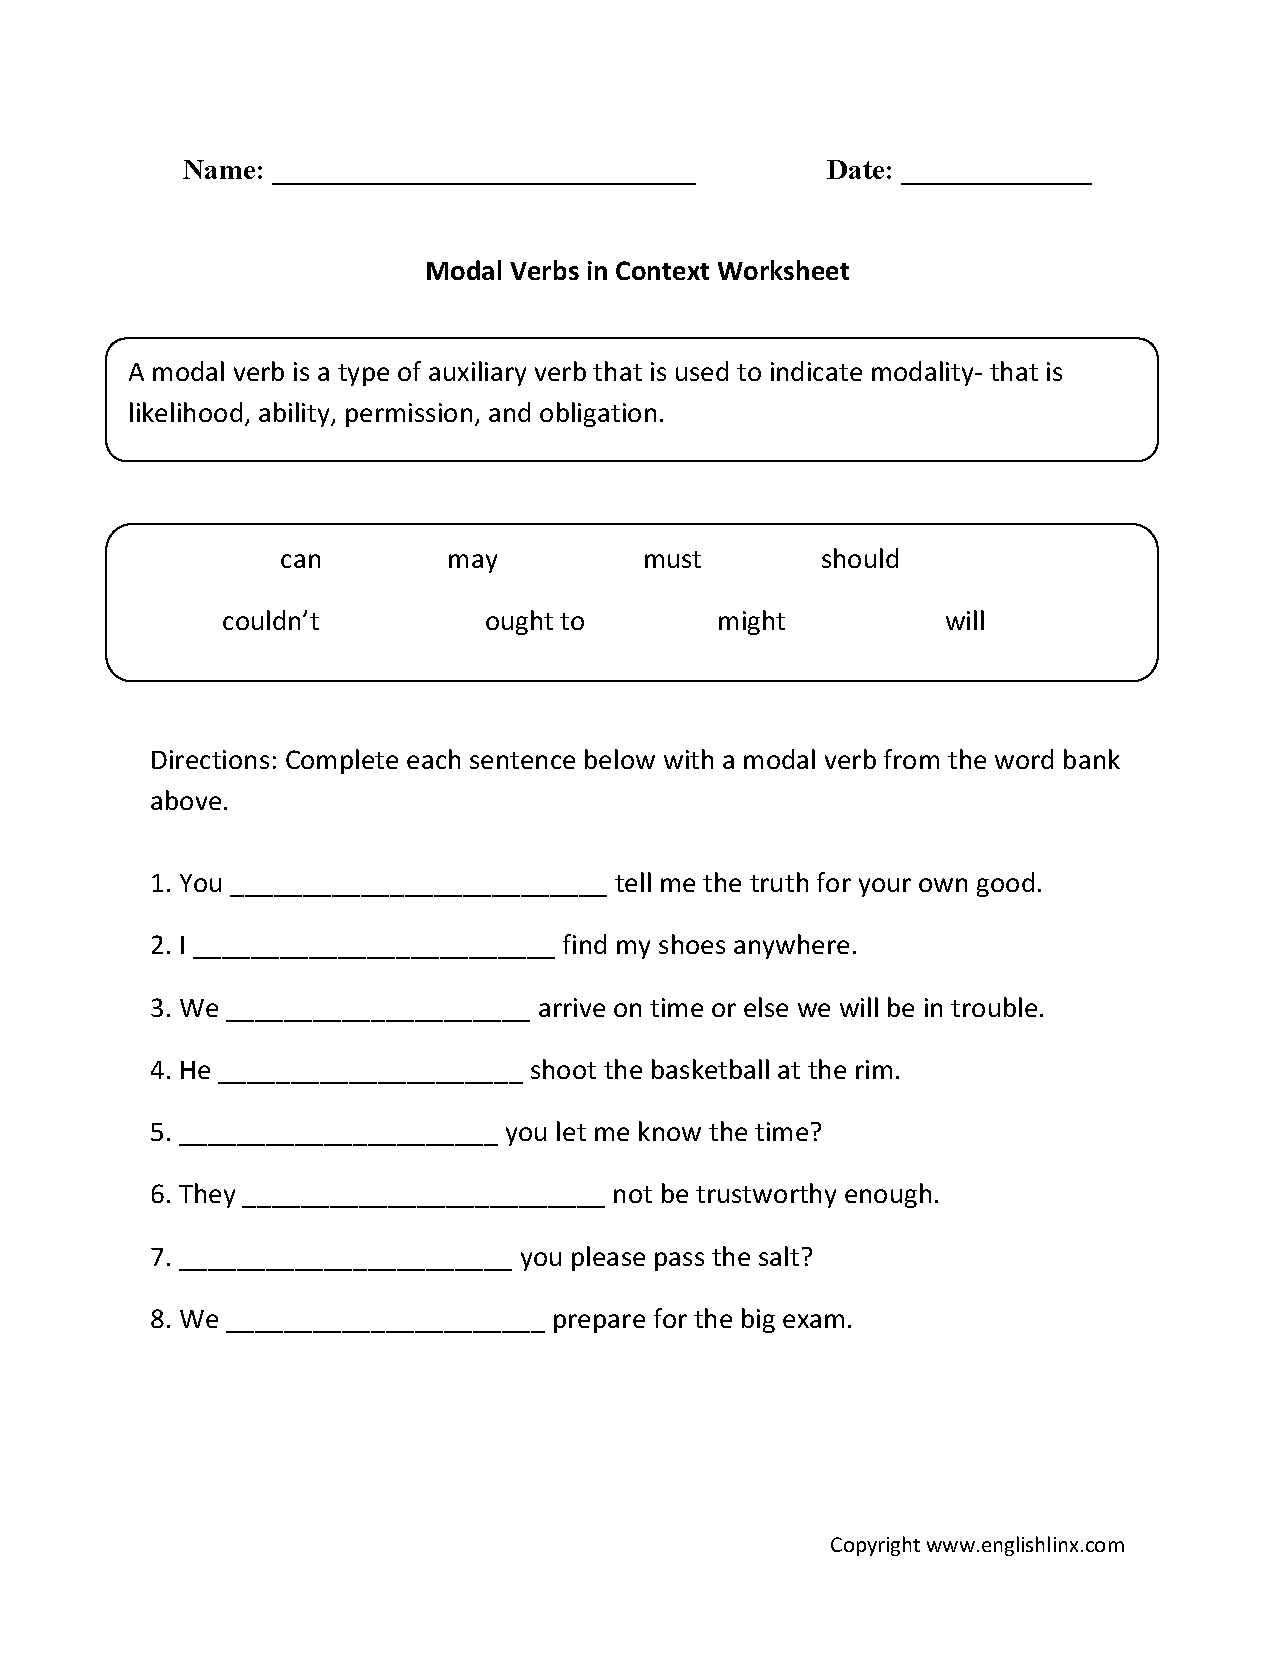 Aldiablosus  Prepossessing Worksheet For Verbs  Coffemix With Magnificent Englishlinxcom  Verbs Worksheets With Amazing Kindergarten Sorting Worksheet Also Multiplication With Regrouping Worksheets In Addition Free Printable Reading Comprehension Worksheets For Th Grade And Essay Worksheets As Well As Printable Fun Worksheets Additionally Poetry Vocabulary Worksheet From Coffemixcom With Aldiablosus  Magnificent Worksheet For Verbs  Coffemix With Amazing Englishlinxcom  Verbs Worksheets And Prepossessing Kindergarten Sorting Worksheet Also Multiplication With Regrouping Worksheets In Addition Free Printable Reading Comprehension Worksheets For Th Grade From Coffemixcom